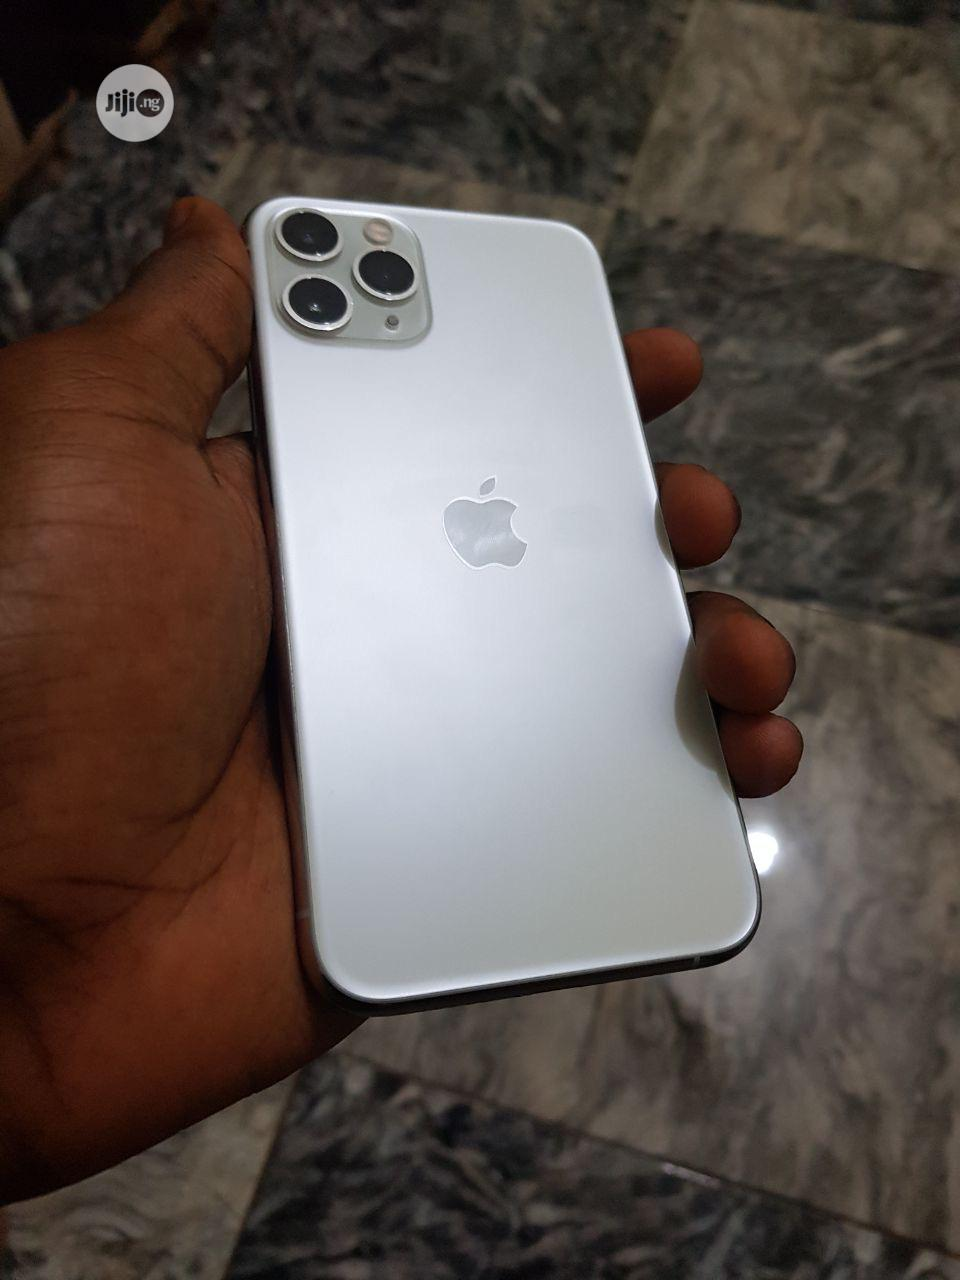 Apple iPhone 11 Pro 64 GB White | Mobile Phones for sale in Owerri, Imo State, Nigeria